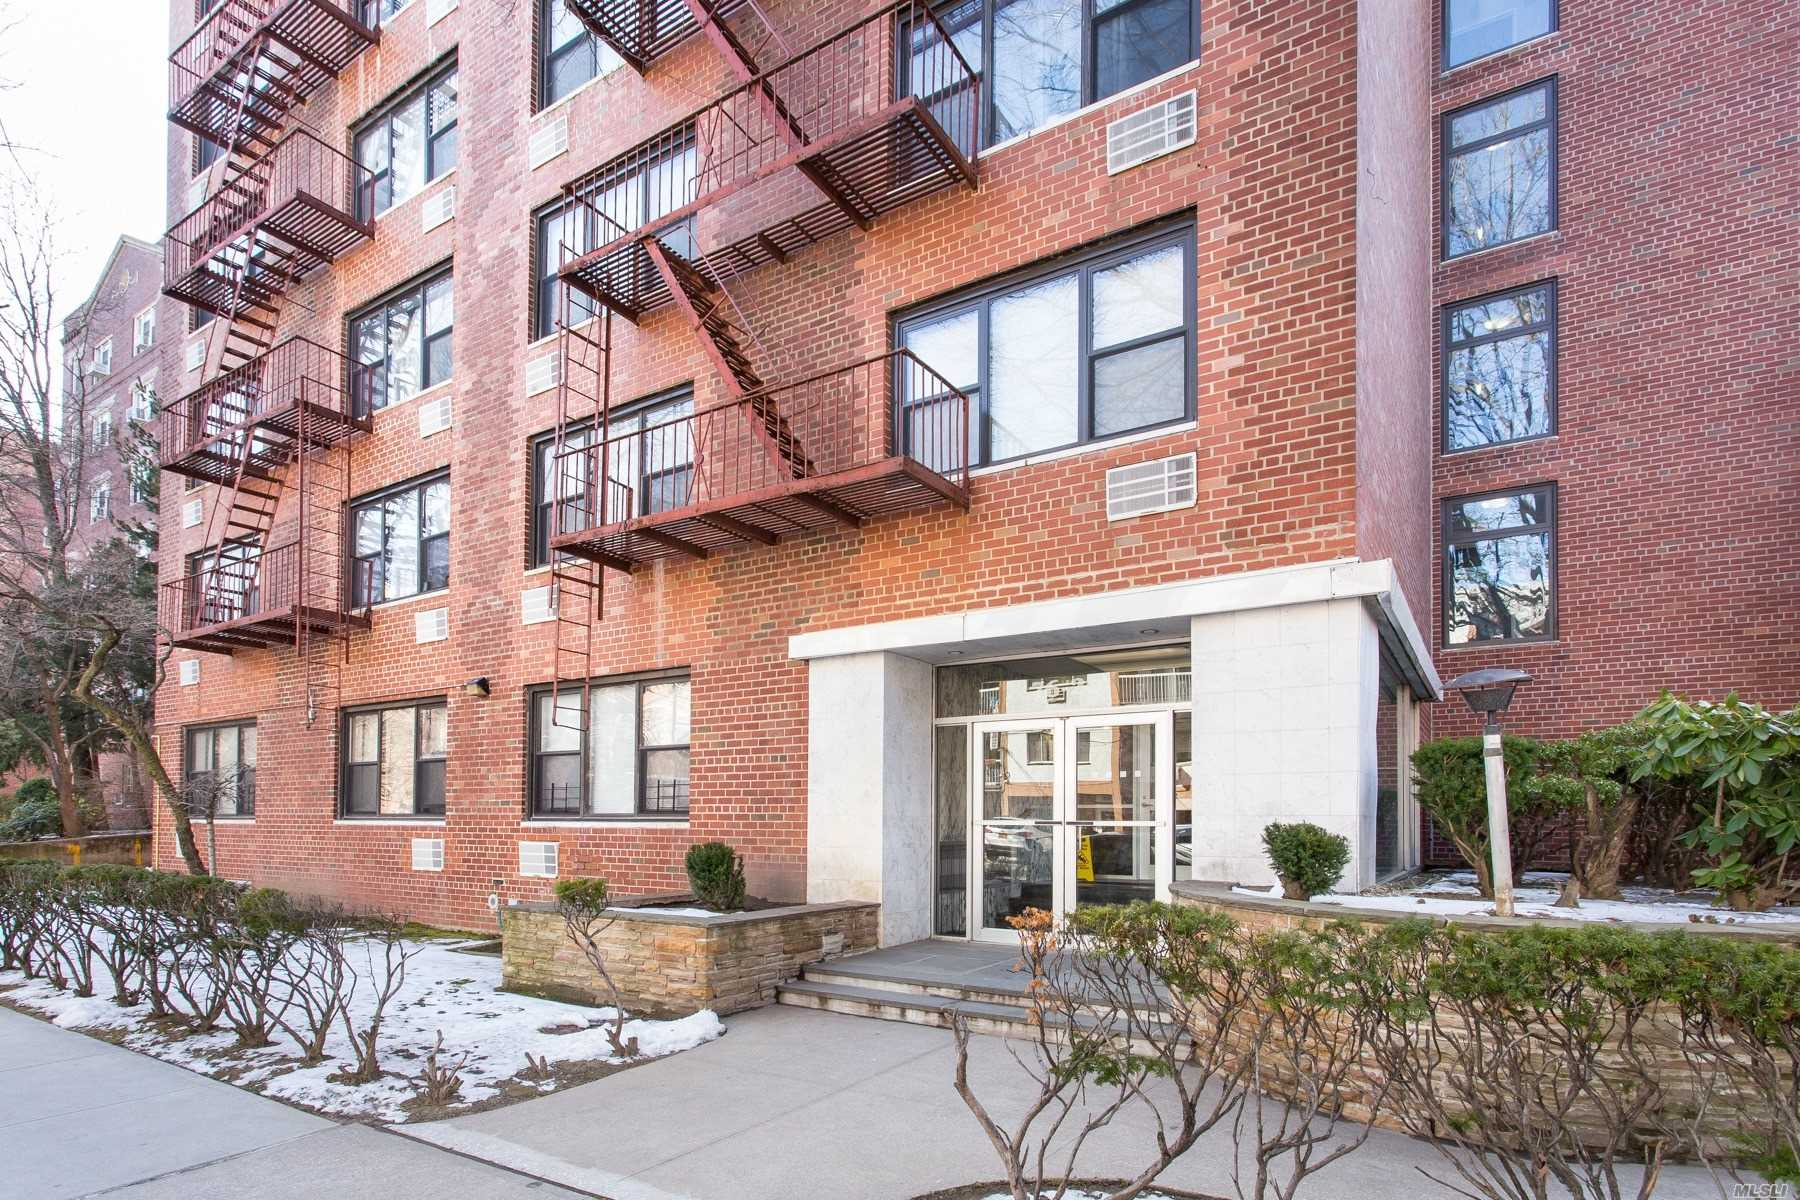 Move-In Ready, Bright, Quiet, Open Western Exp.Studio. Large L Shaped Closets.Efficiency Kitchen With Full Size Fridge.Why Rent, When You Can Own? Low Maintenance, Excellent Location: Few Minutes Walk To Subway.20 Minutes To Jfk Or Lga.Perfect Pied-A-Terre: Less Than 30 Minutes Into Manhattan. Commuter Perfection. Renovate To Taste!